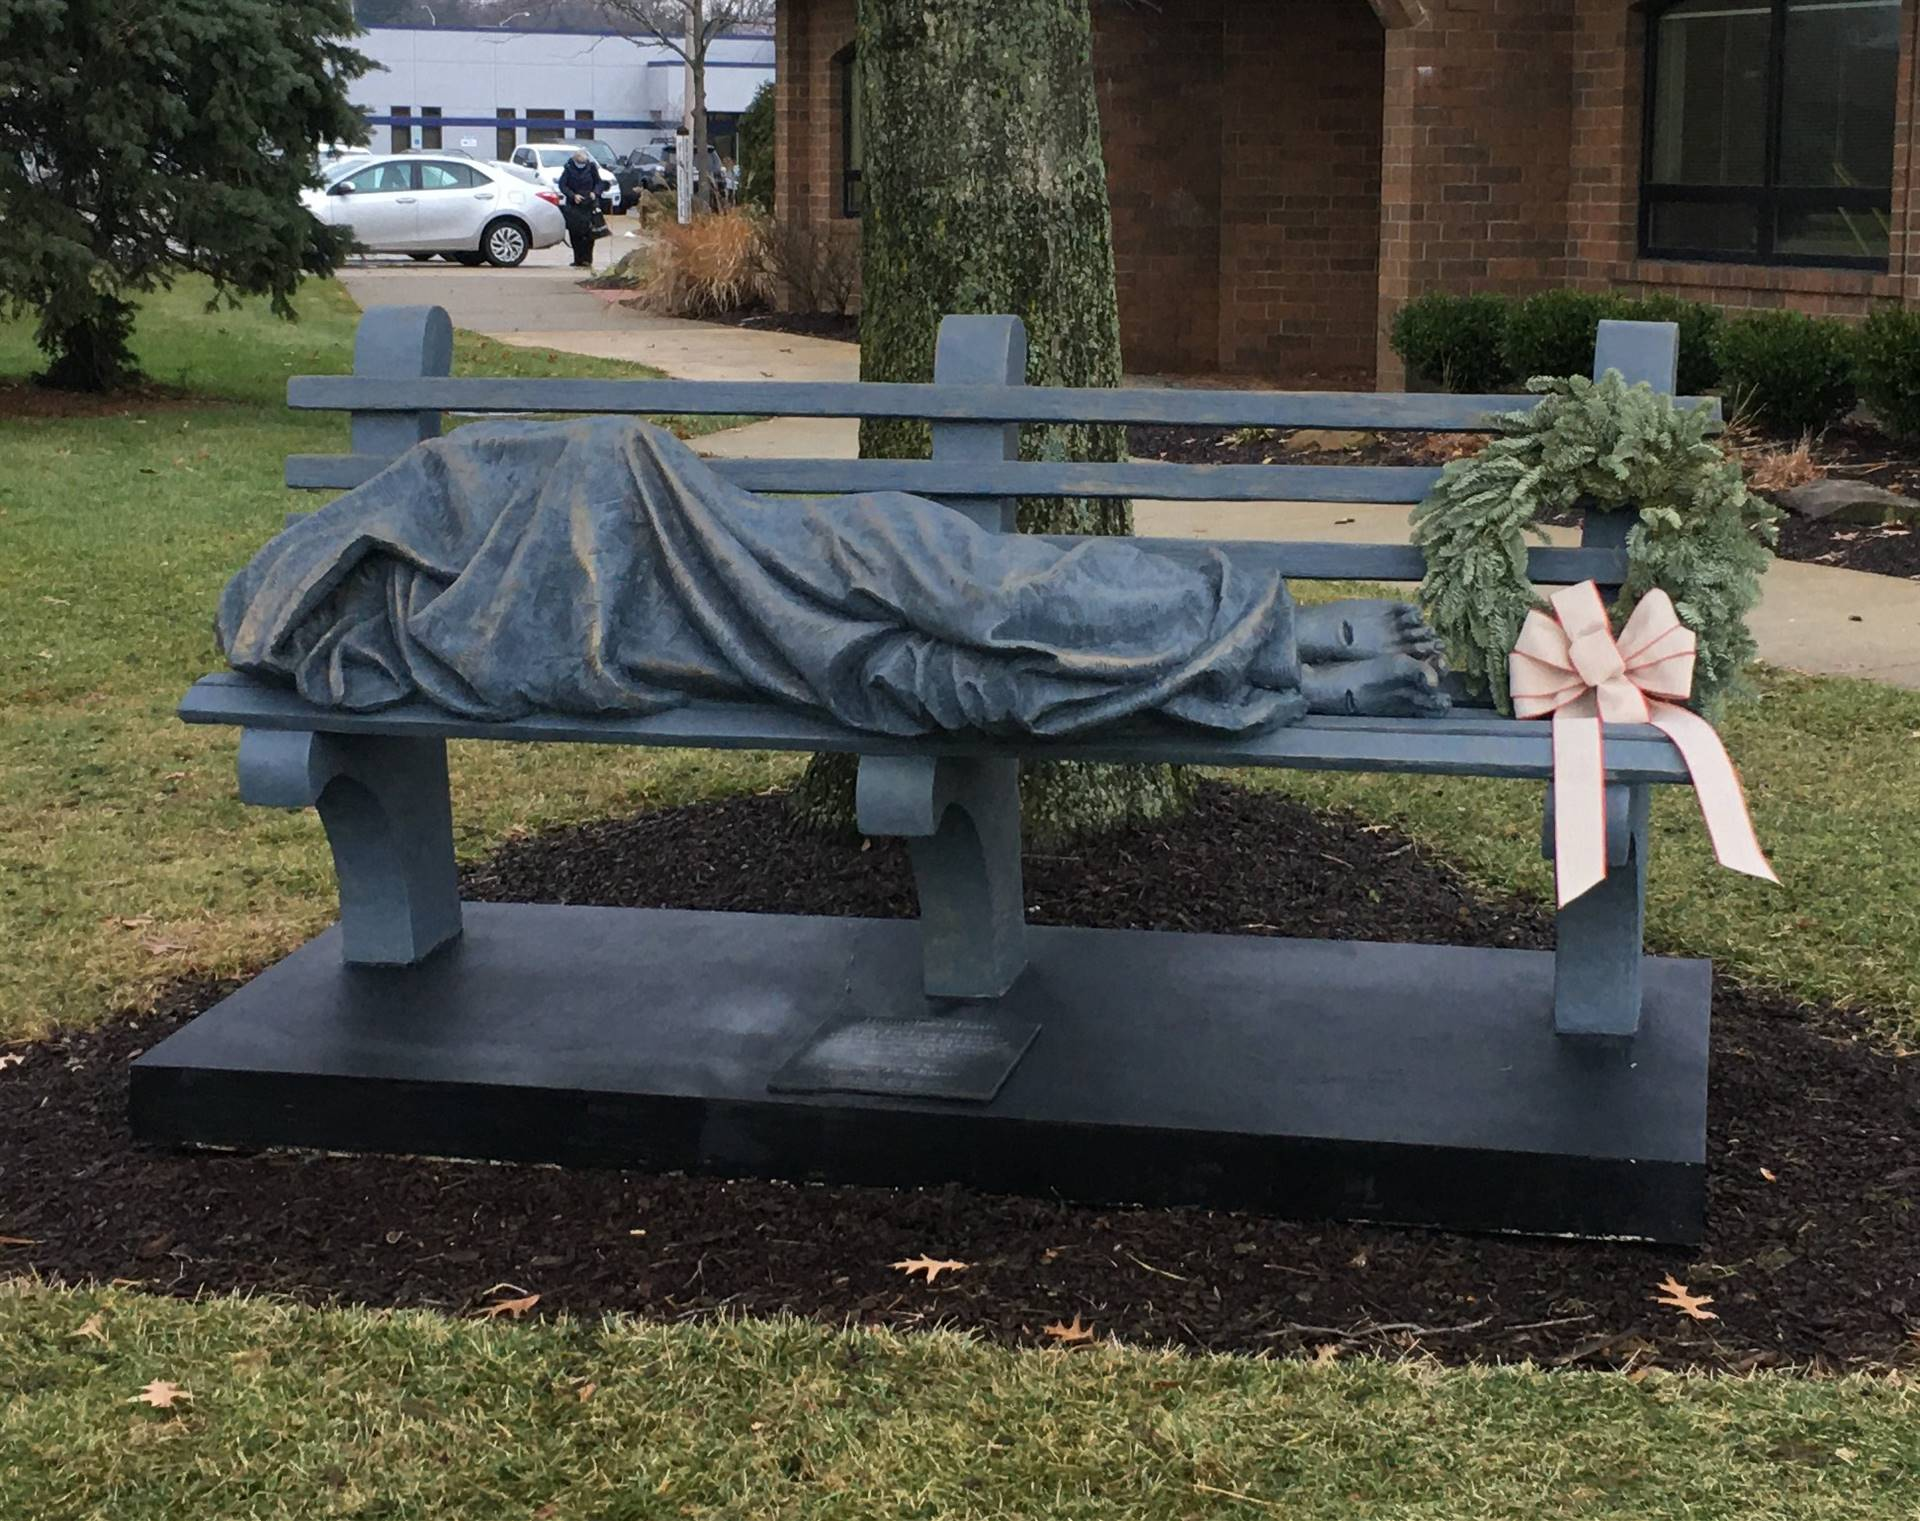 picture of homeless Jesus statue